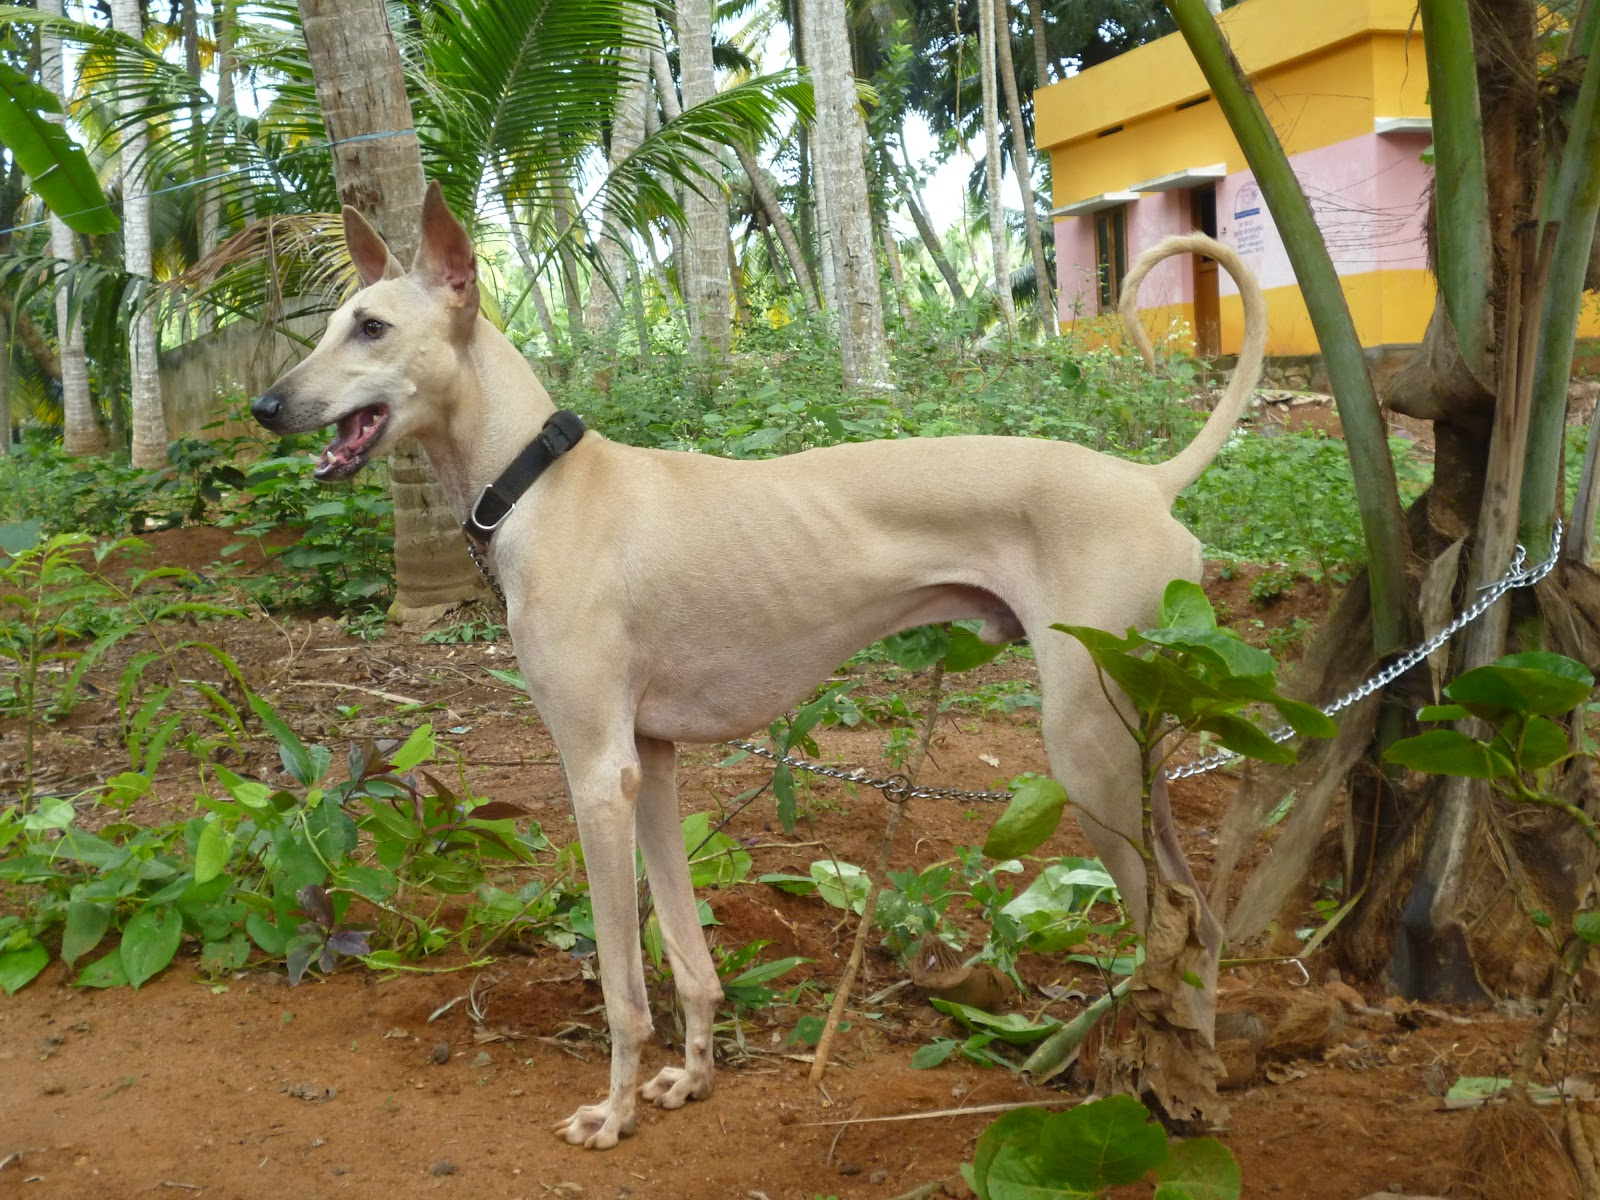 Chippiparai Puppies: Chippiparai Httpccsolxincuicccc Rajapalyamchippiparaikombai And Kanni Dogs For Sale Animalsjpg Breed